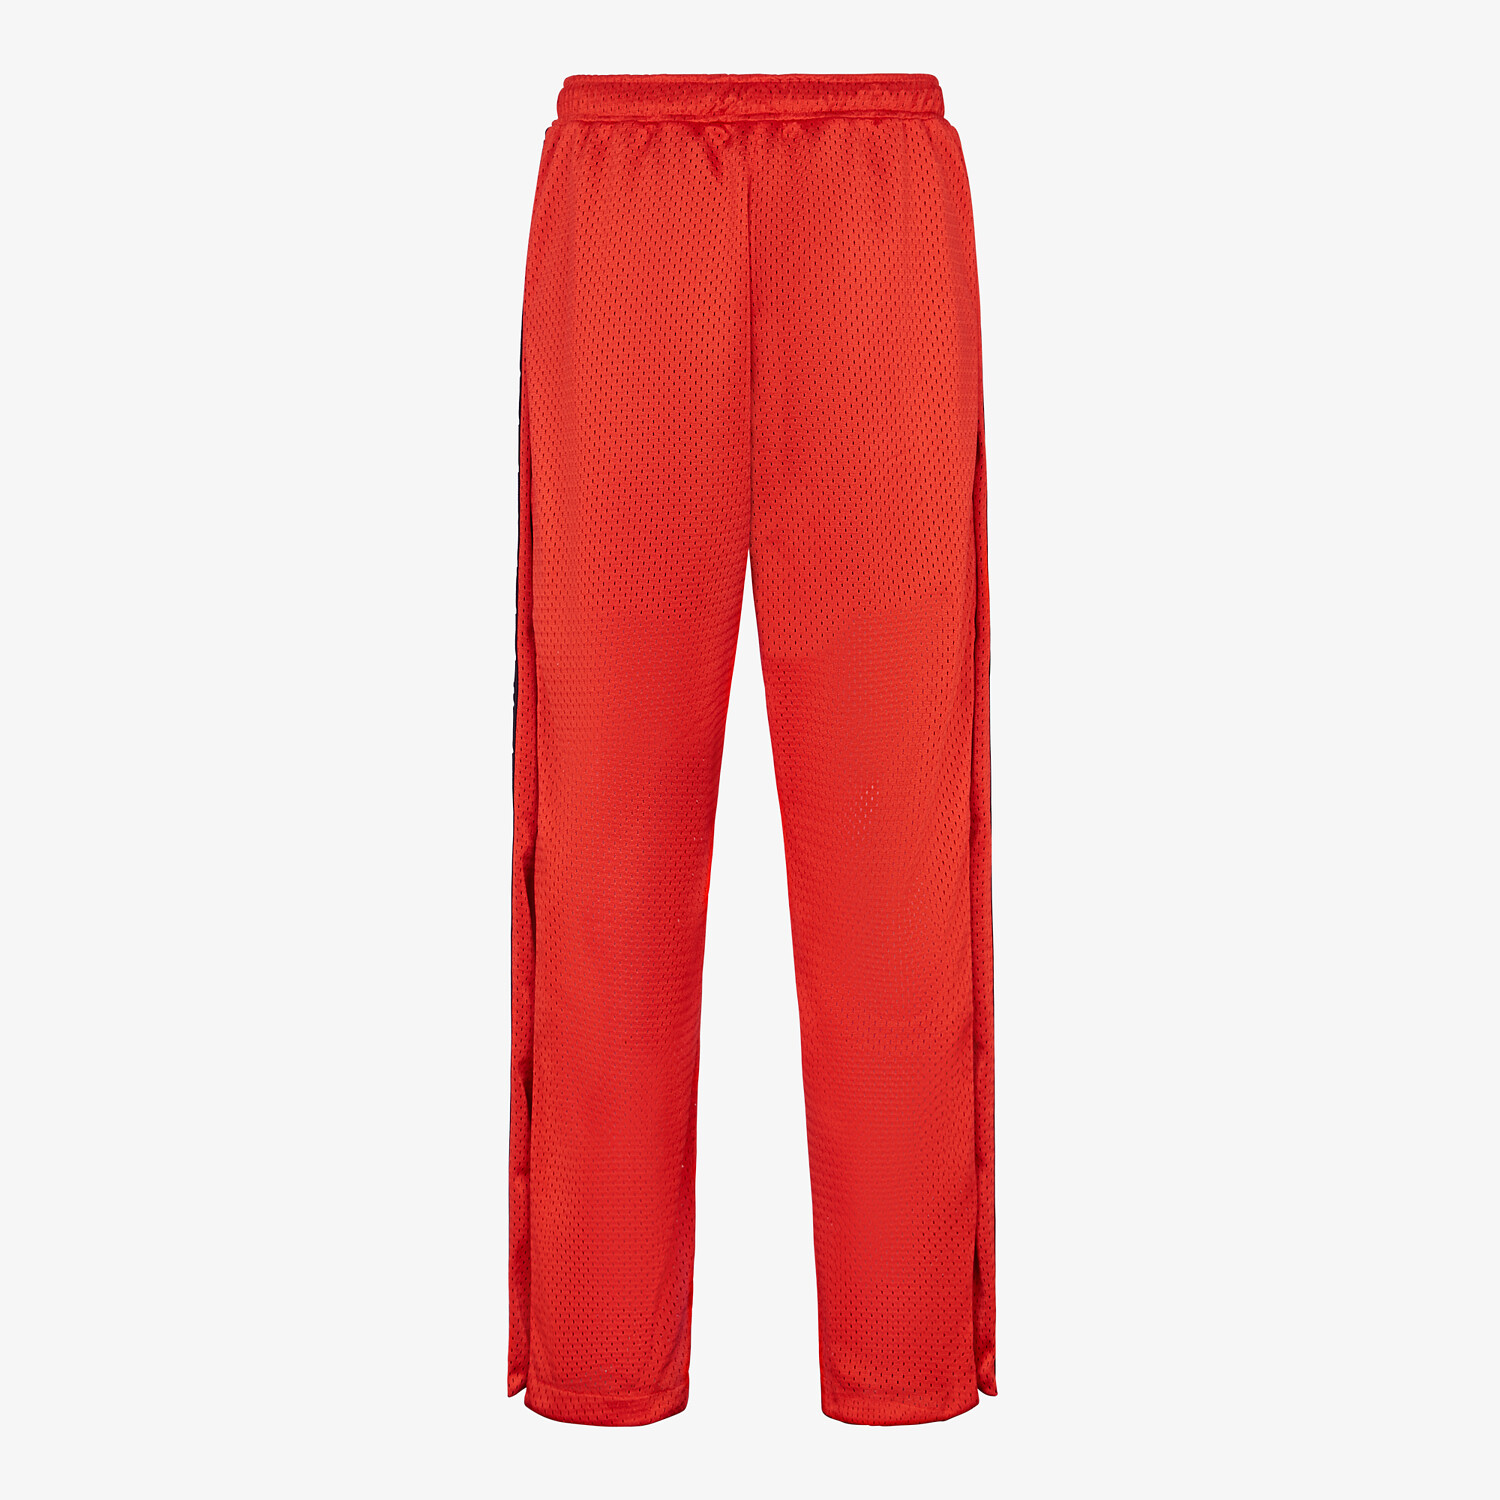 FENDI PANTS - Red tech mesh pants - view 2 detail